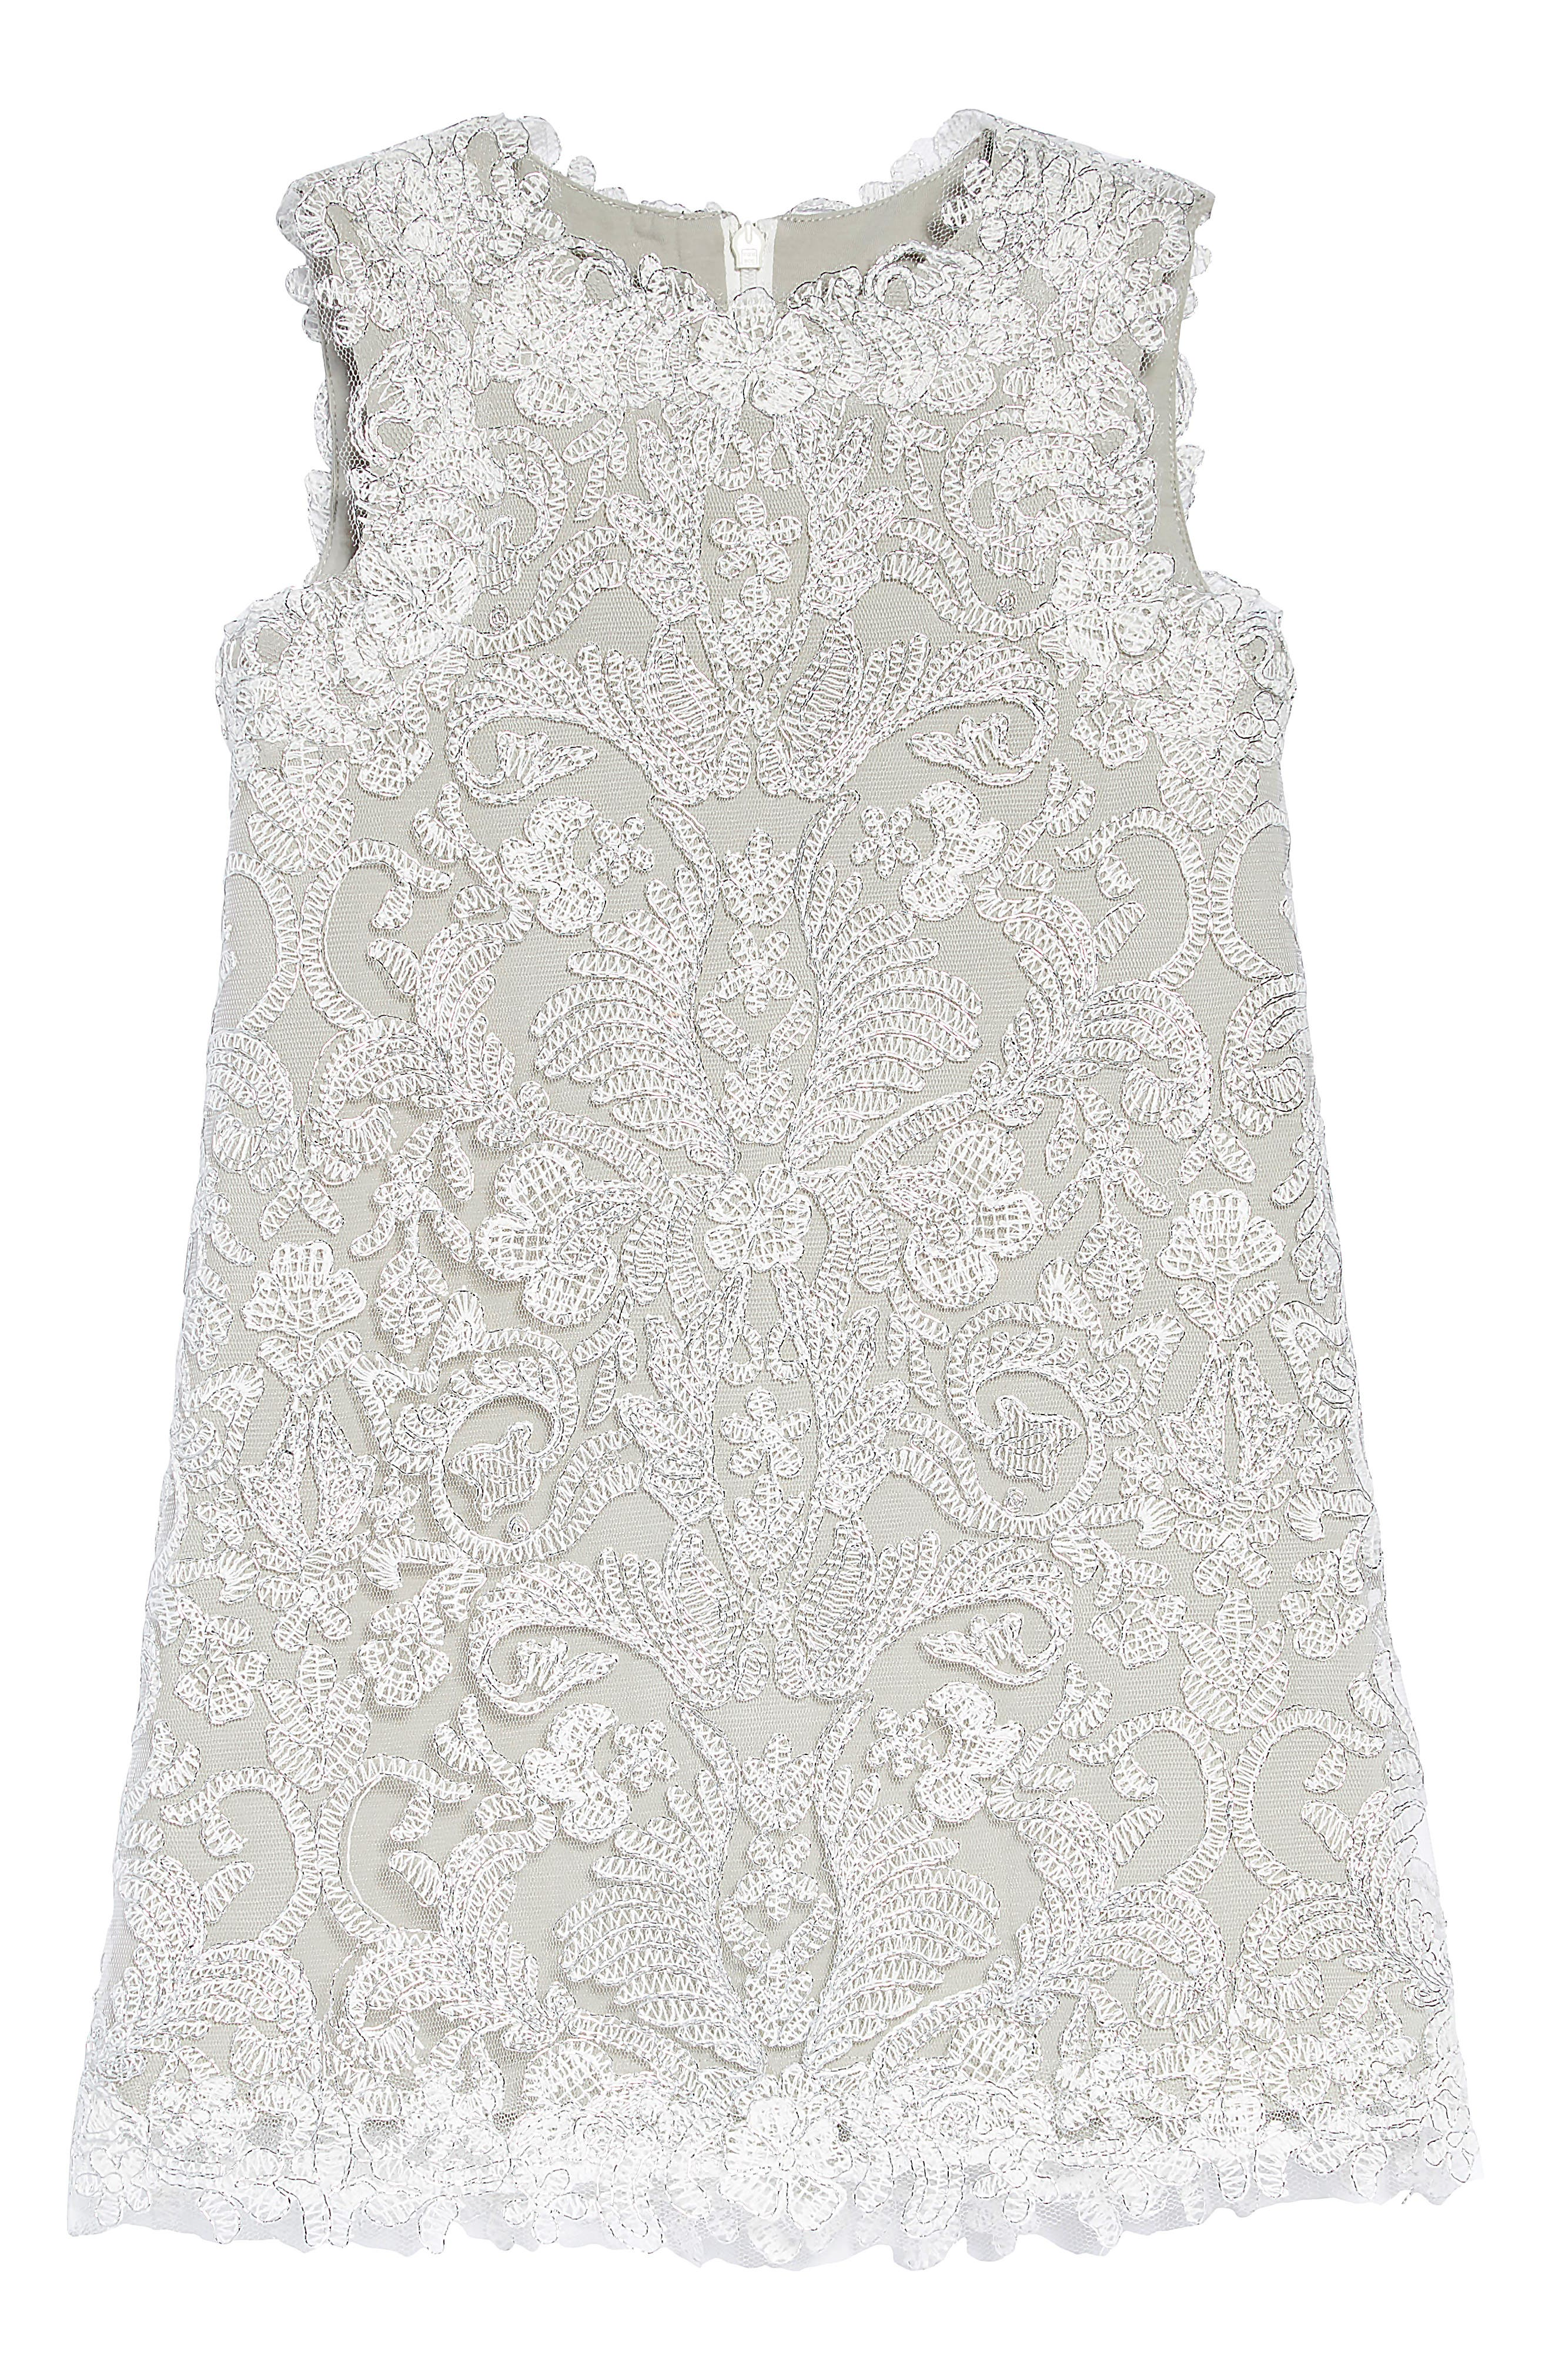 Embroidered Sheath Dress,                             Main thumbnail 1, color,                             SILVER